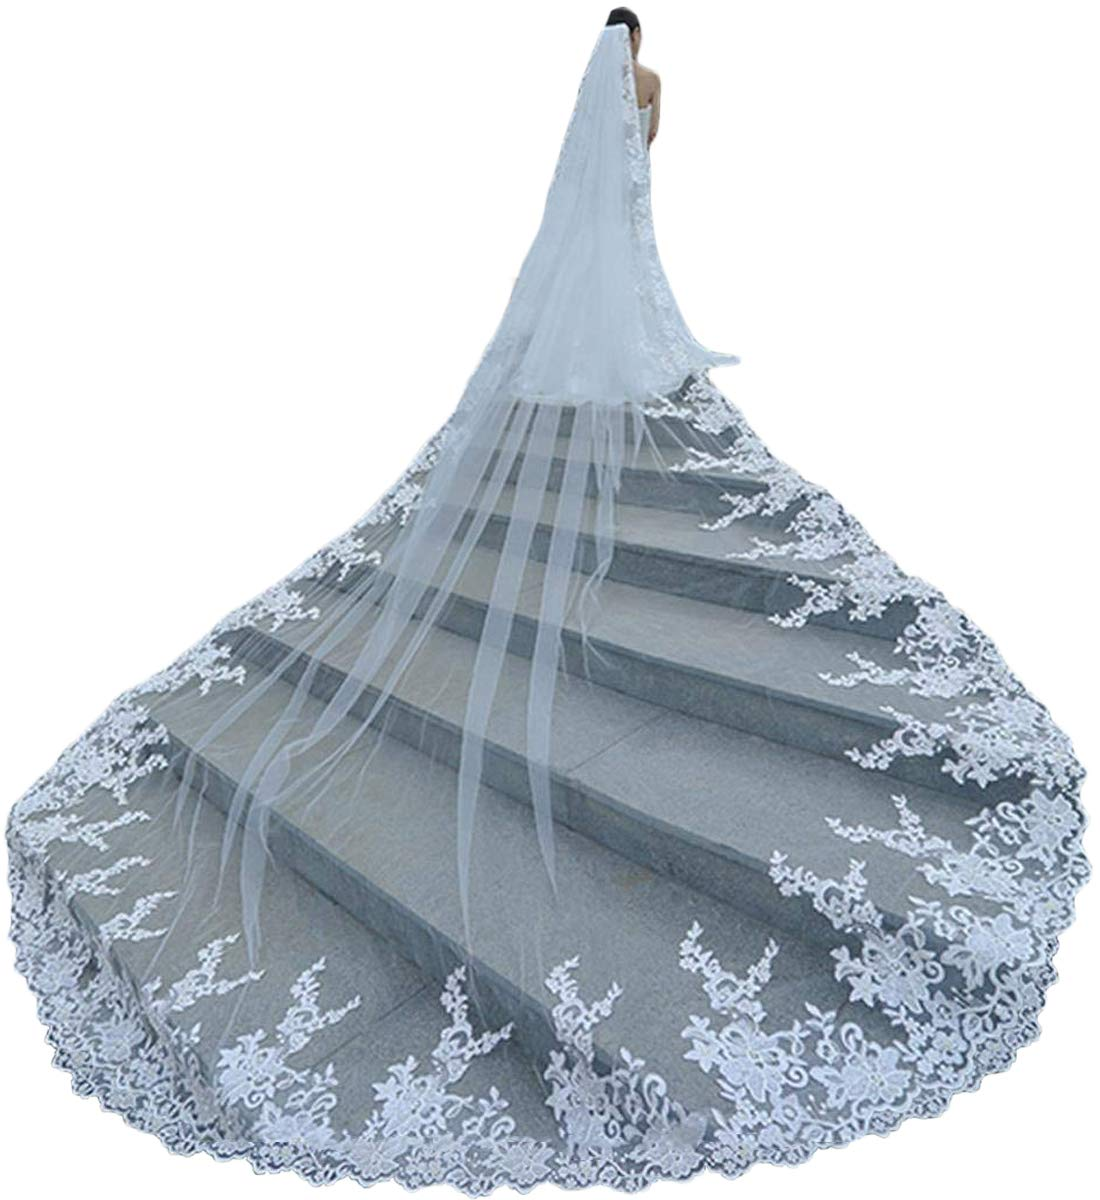 Faithclover Wedding Veils Long Cathedral Full Floral Lace Egde 1 Tier with Comb by Faithclover